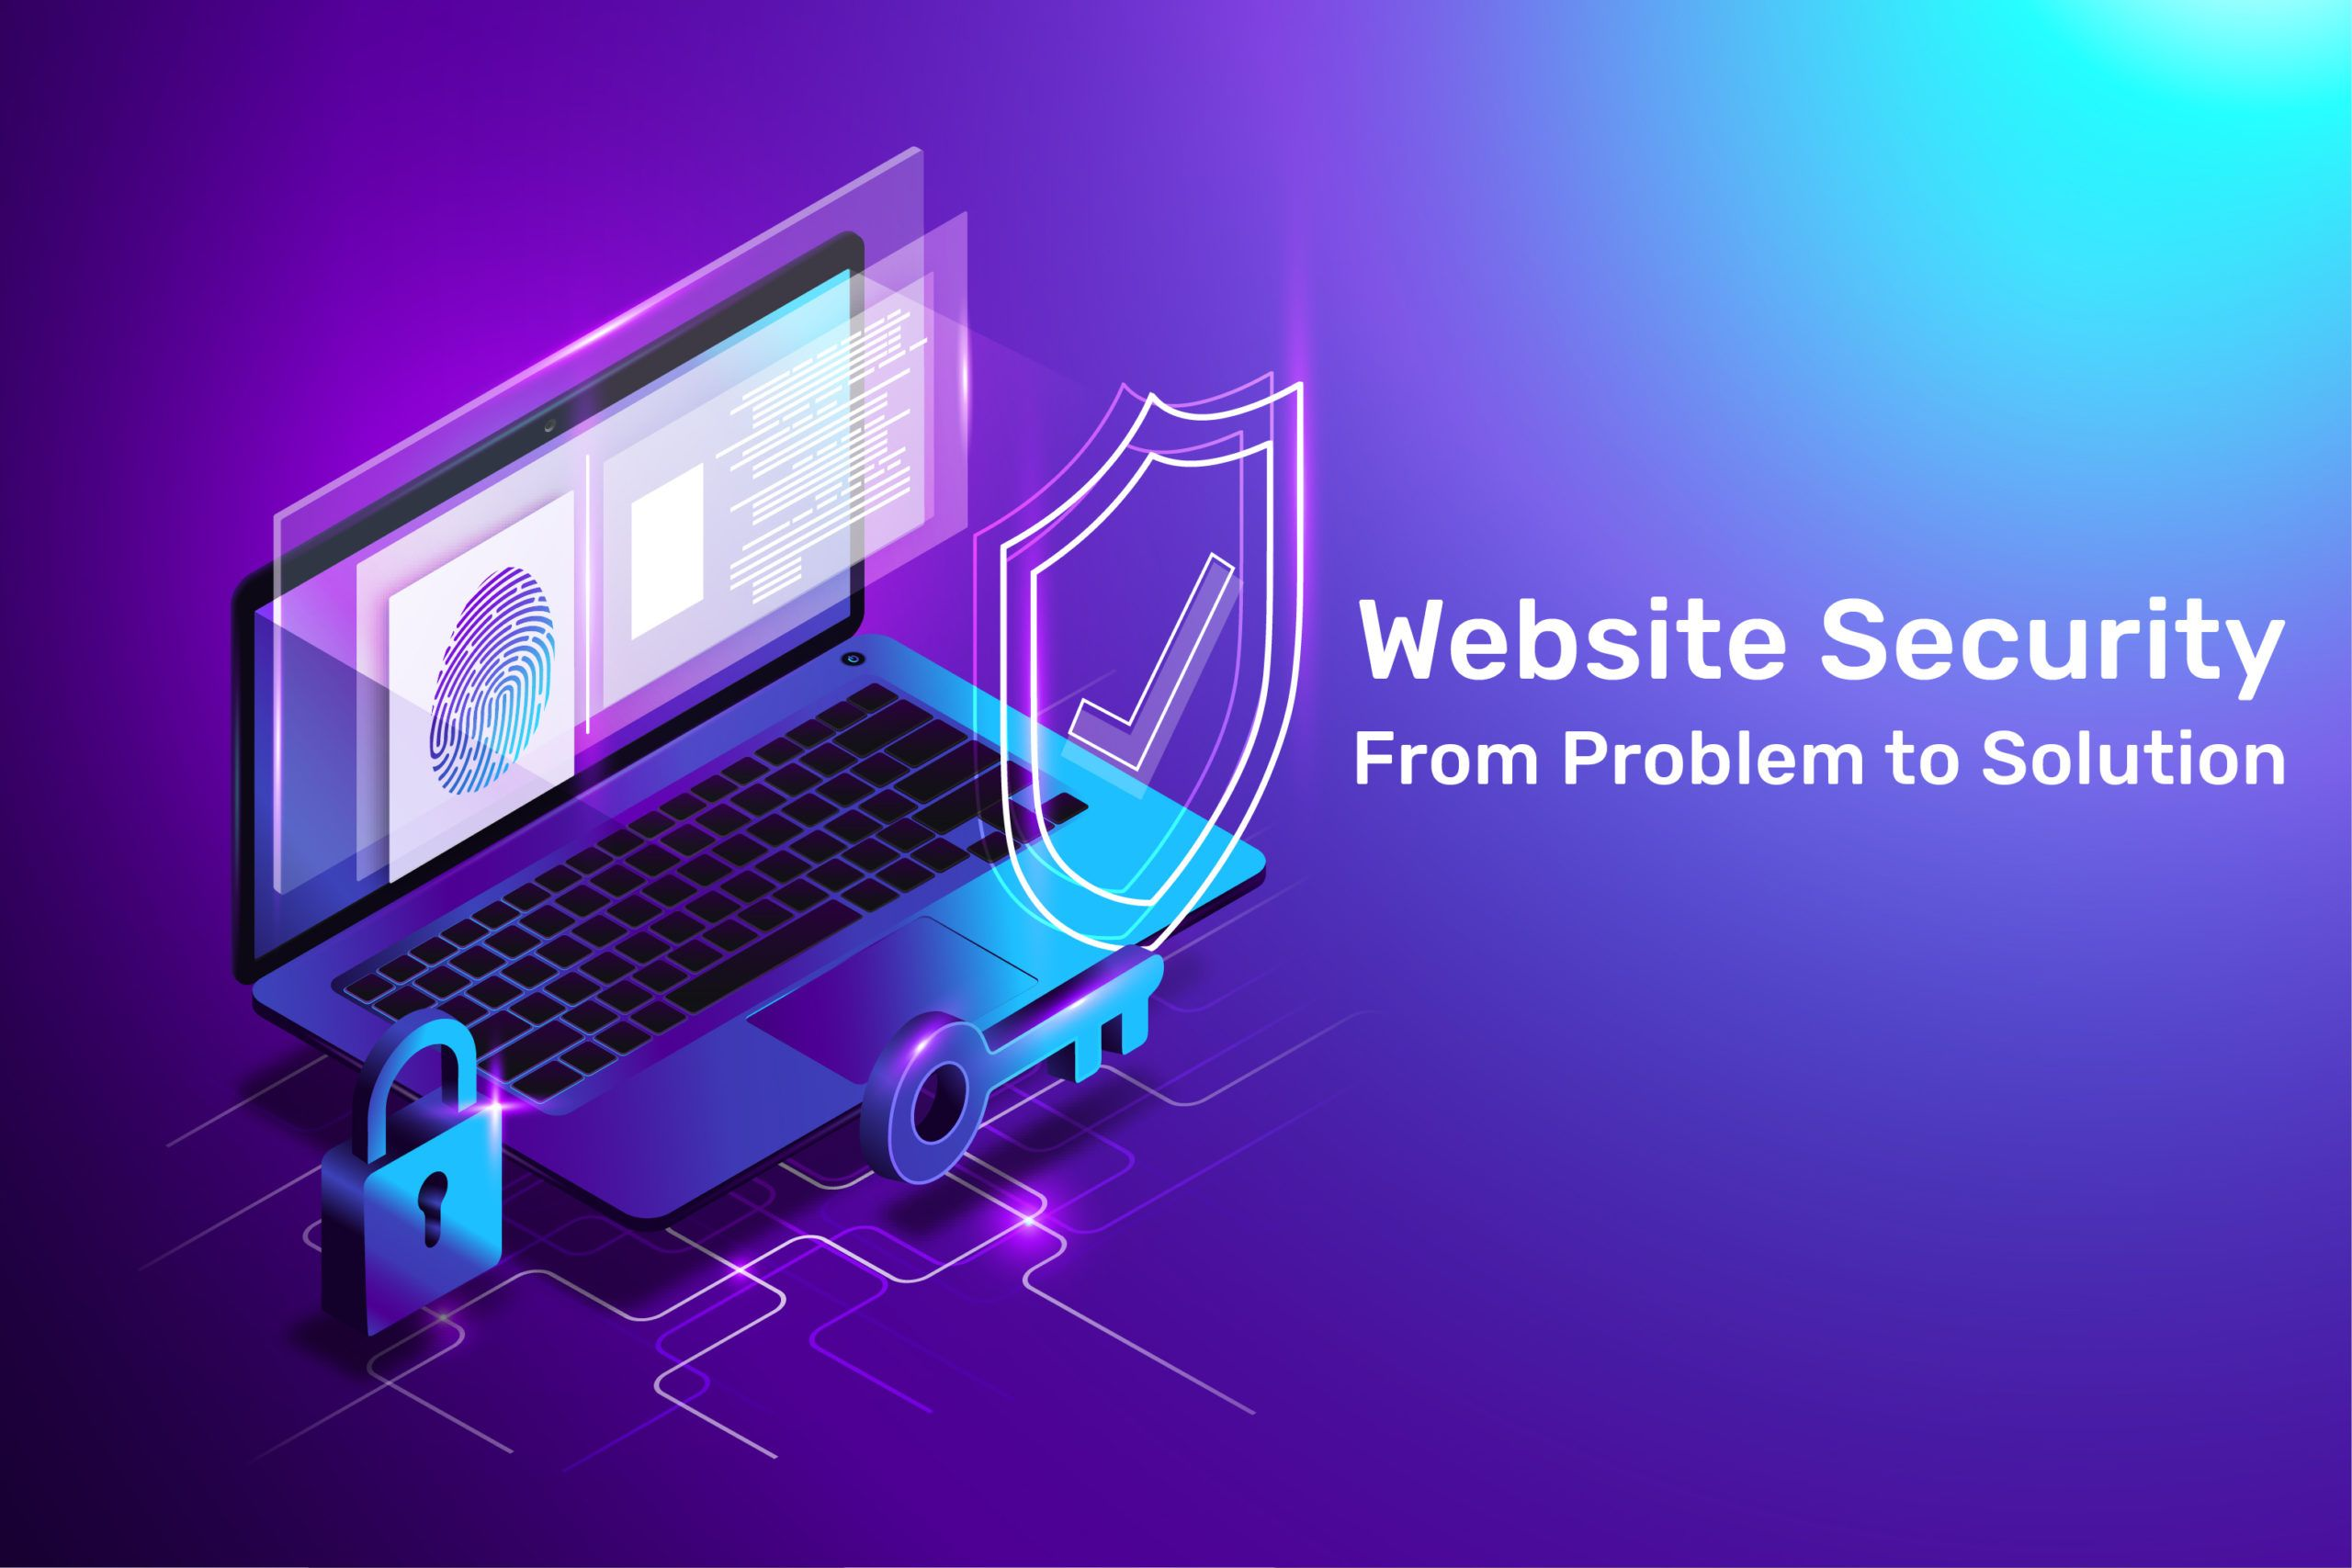 Website Security: The road from vulnerability to solution